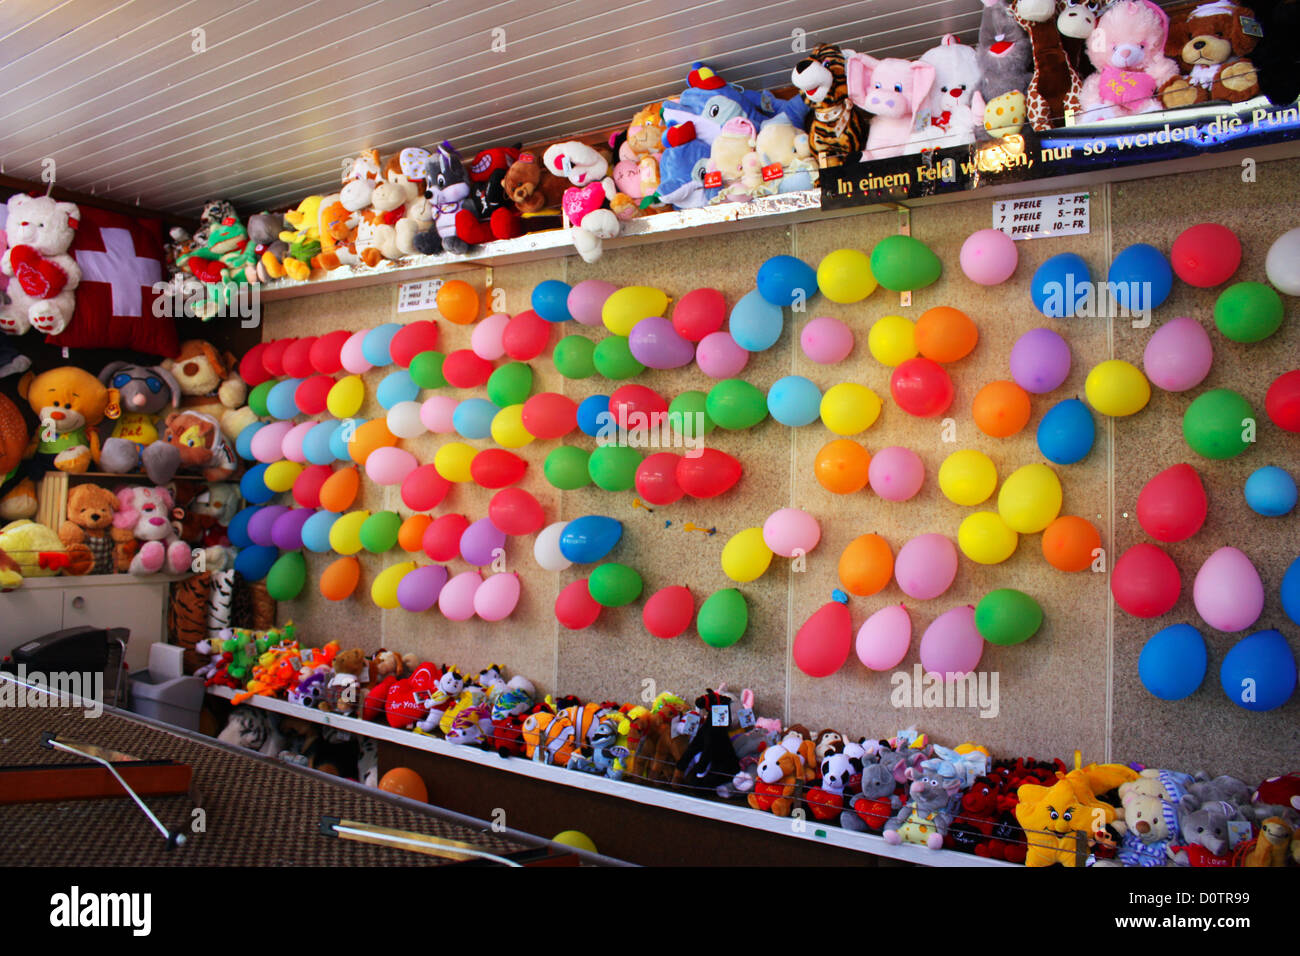 Colourful balloons and soft toys in fun fair in Zug, Switzerland Stock Photo